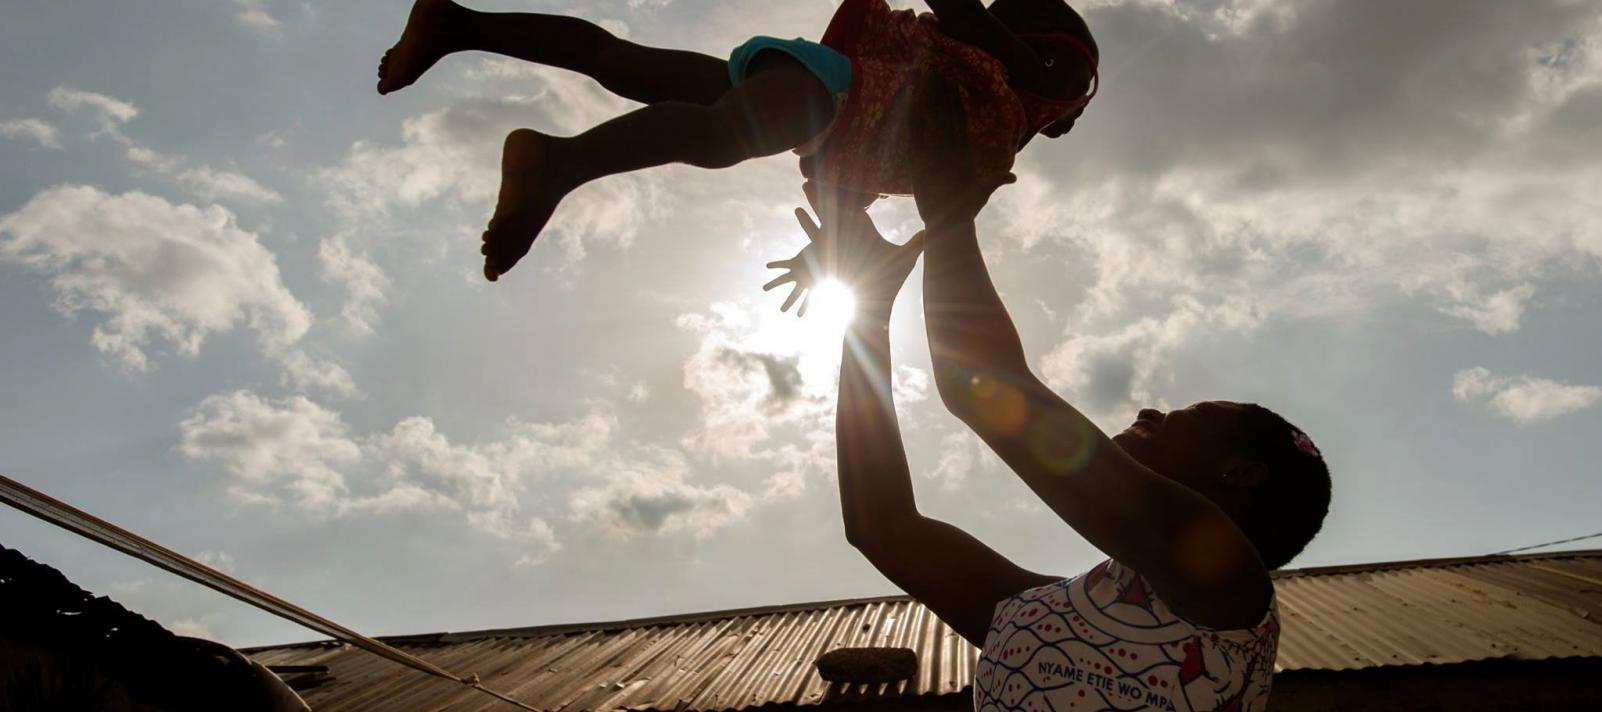 A mother and child playing, photographed against the sky